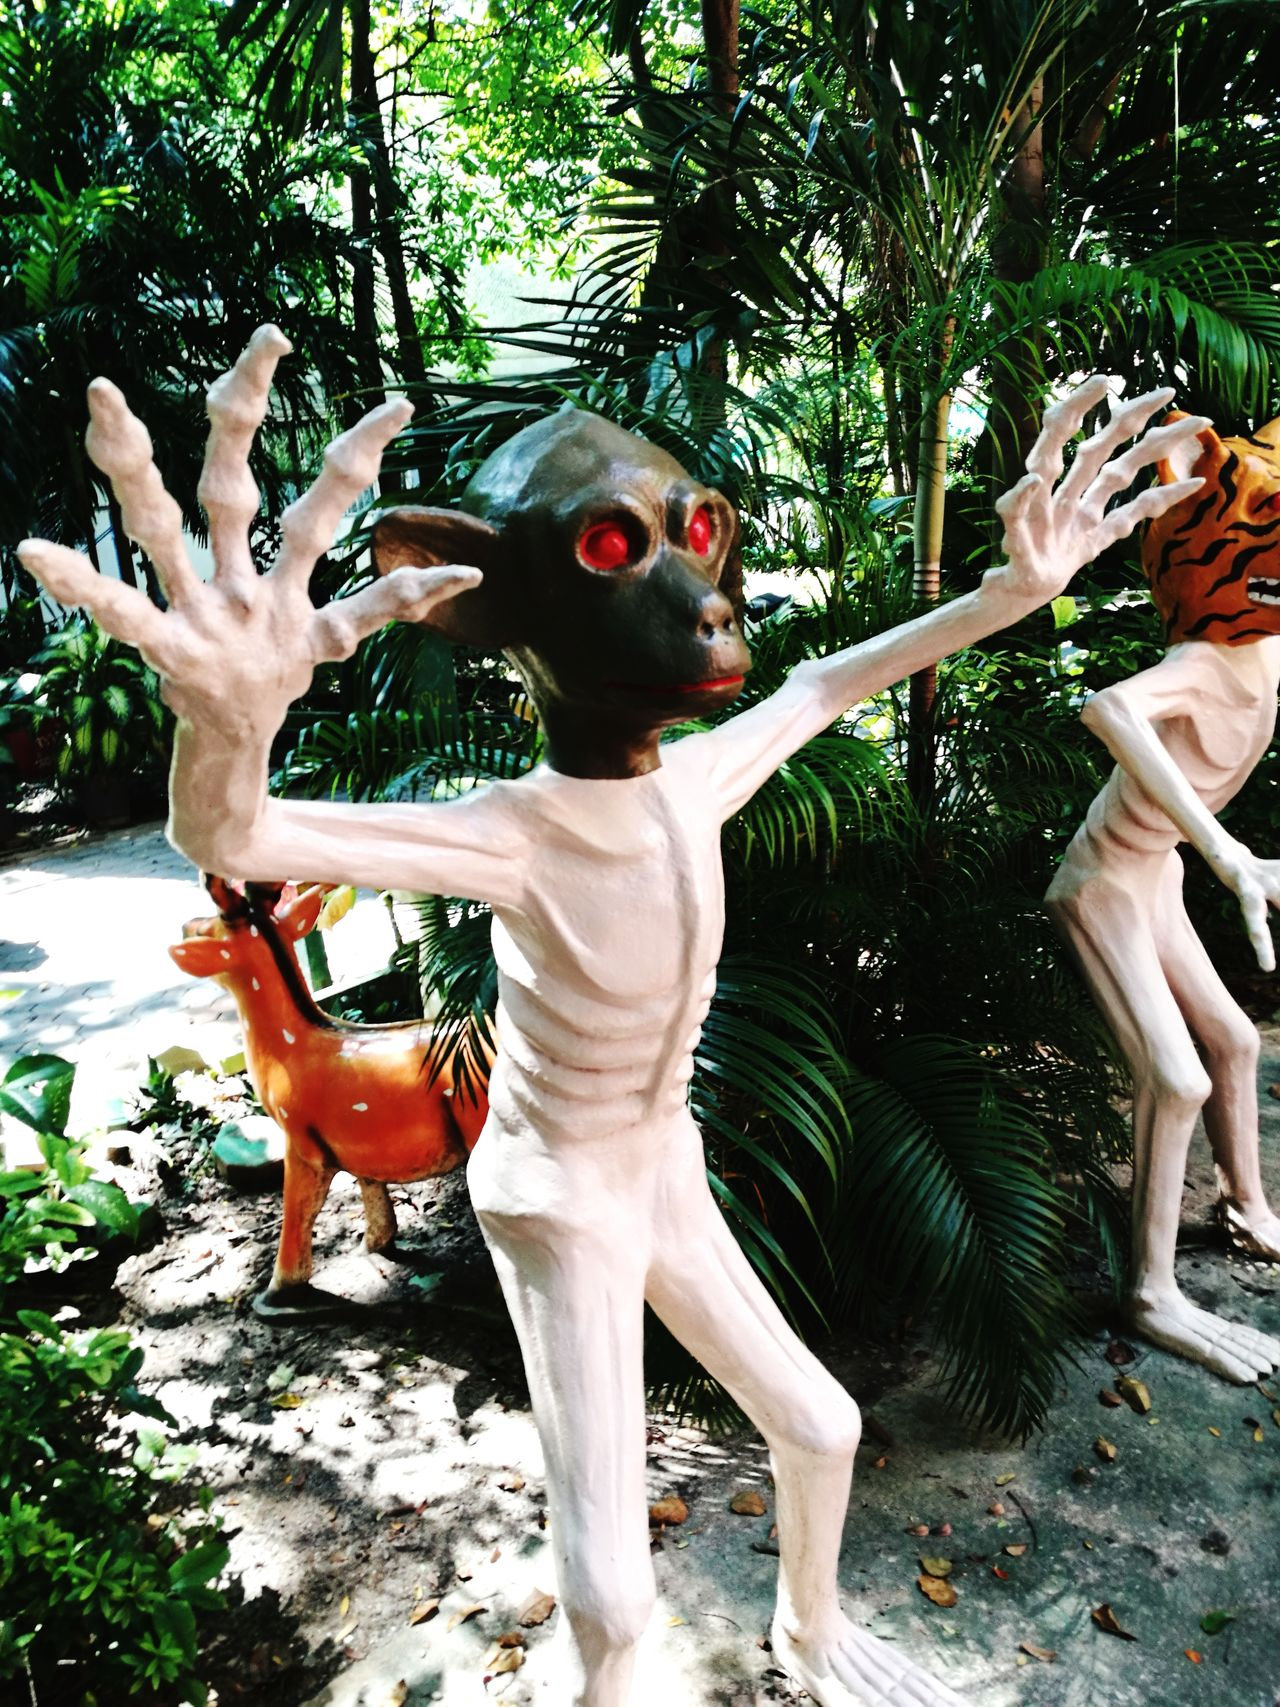 Hell Buddhism Monkey Human Hand Statue Outdoors Scary Demons Demonic Evil Monkey Tree Day Human Body Part Childhood One Person People Adult Thailand🇹🇭 Thailand